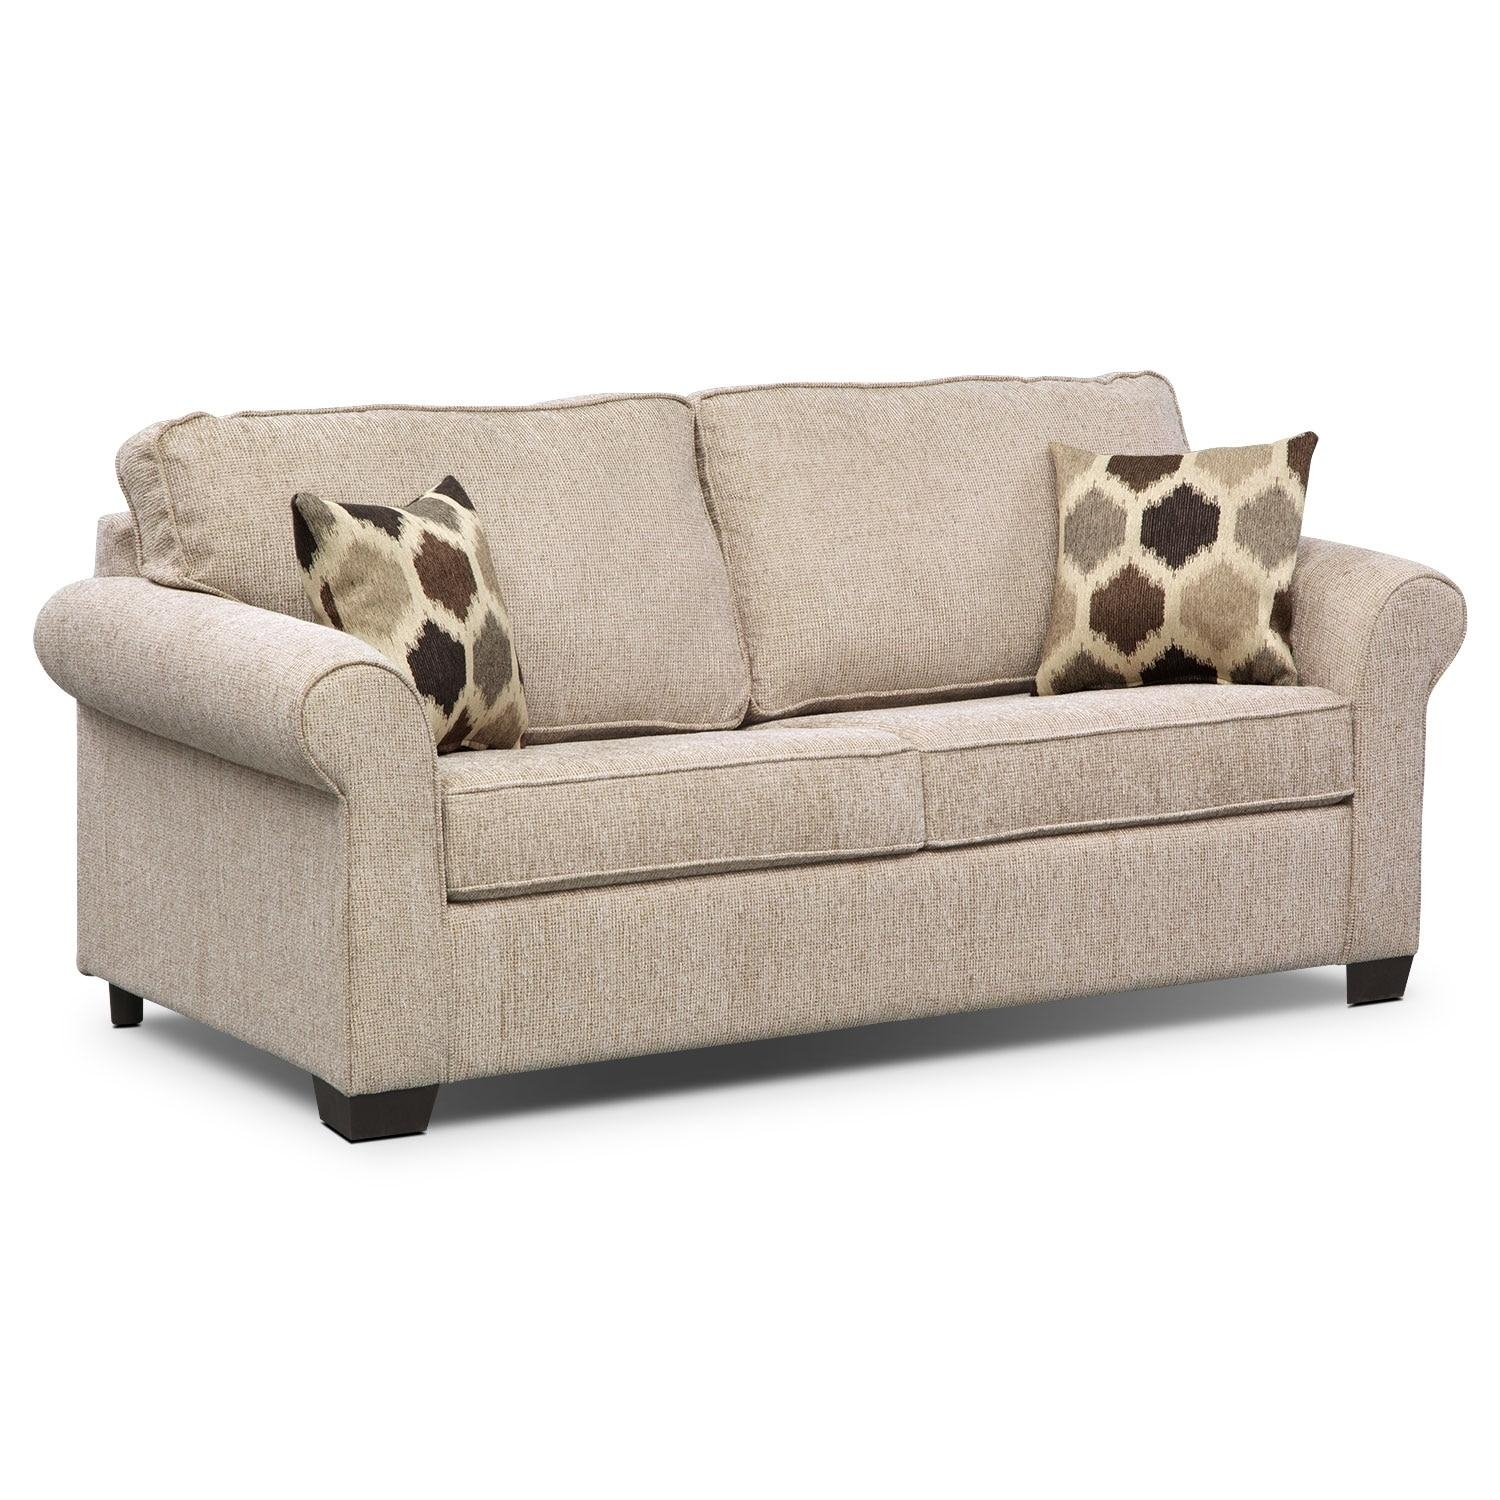 dwr bay sleeper sofa review accent chairs for brown leather 20 top craigslist sofas ideas